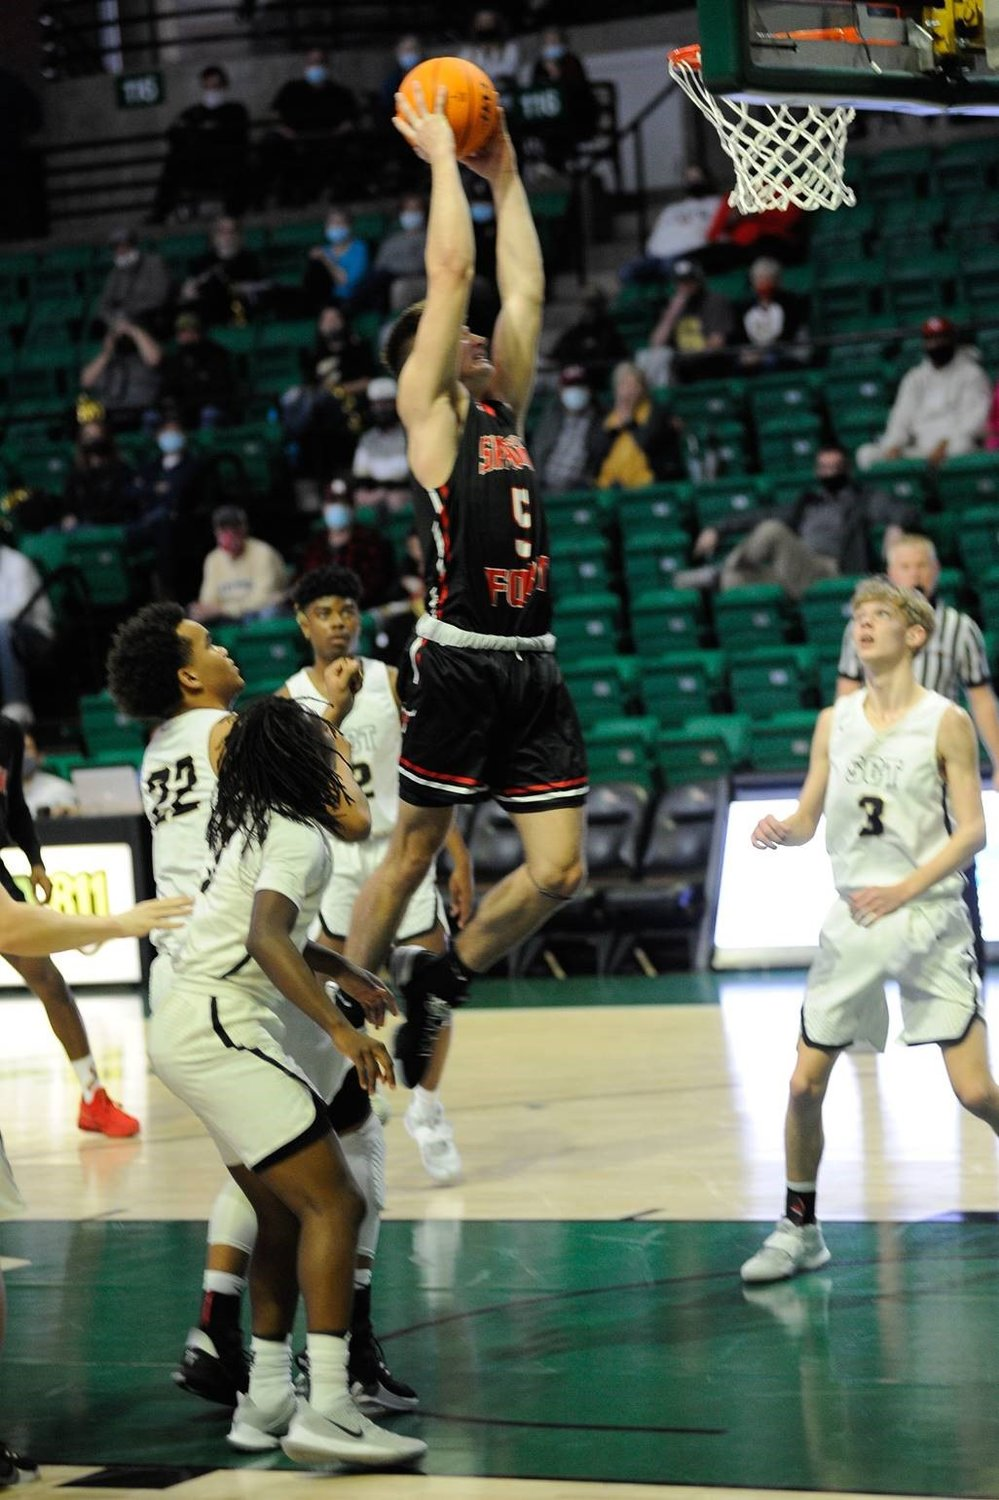 Cameron Keshock (5) of Spanish Fort jumps high for a bucket in the Toros' 65-61 Class 6A semifinal win at Bartow Arena.